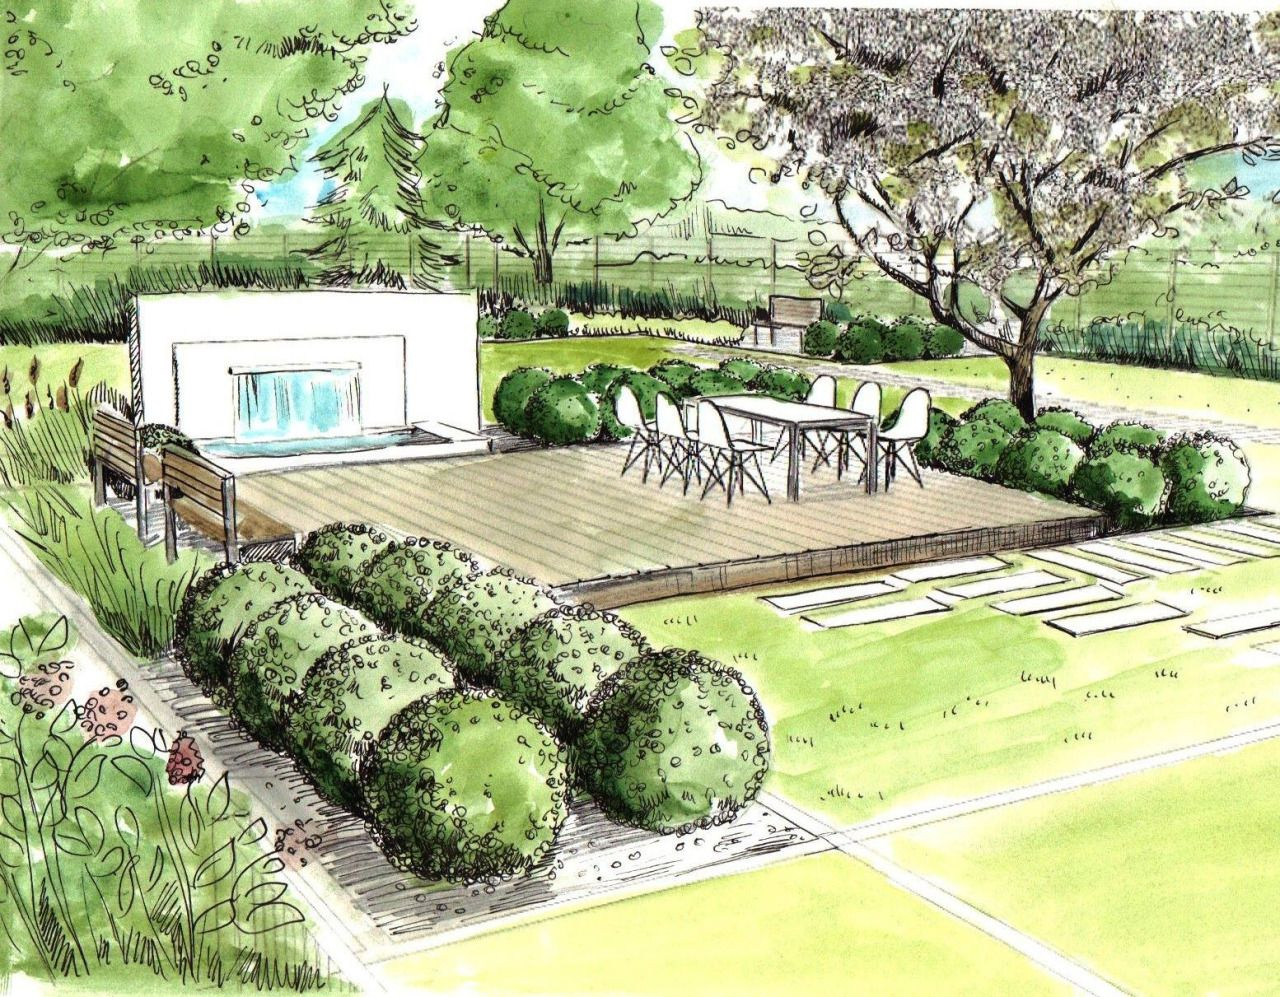 Landscape Architecture  Perspectives and Renderings